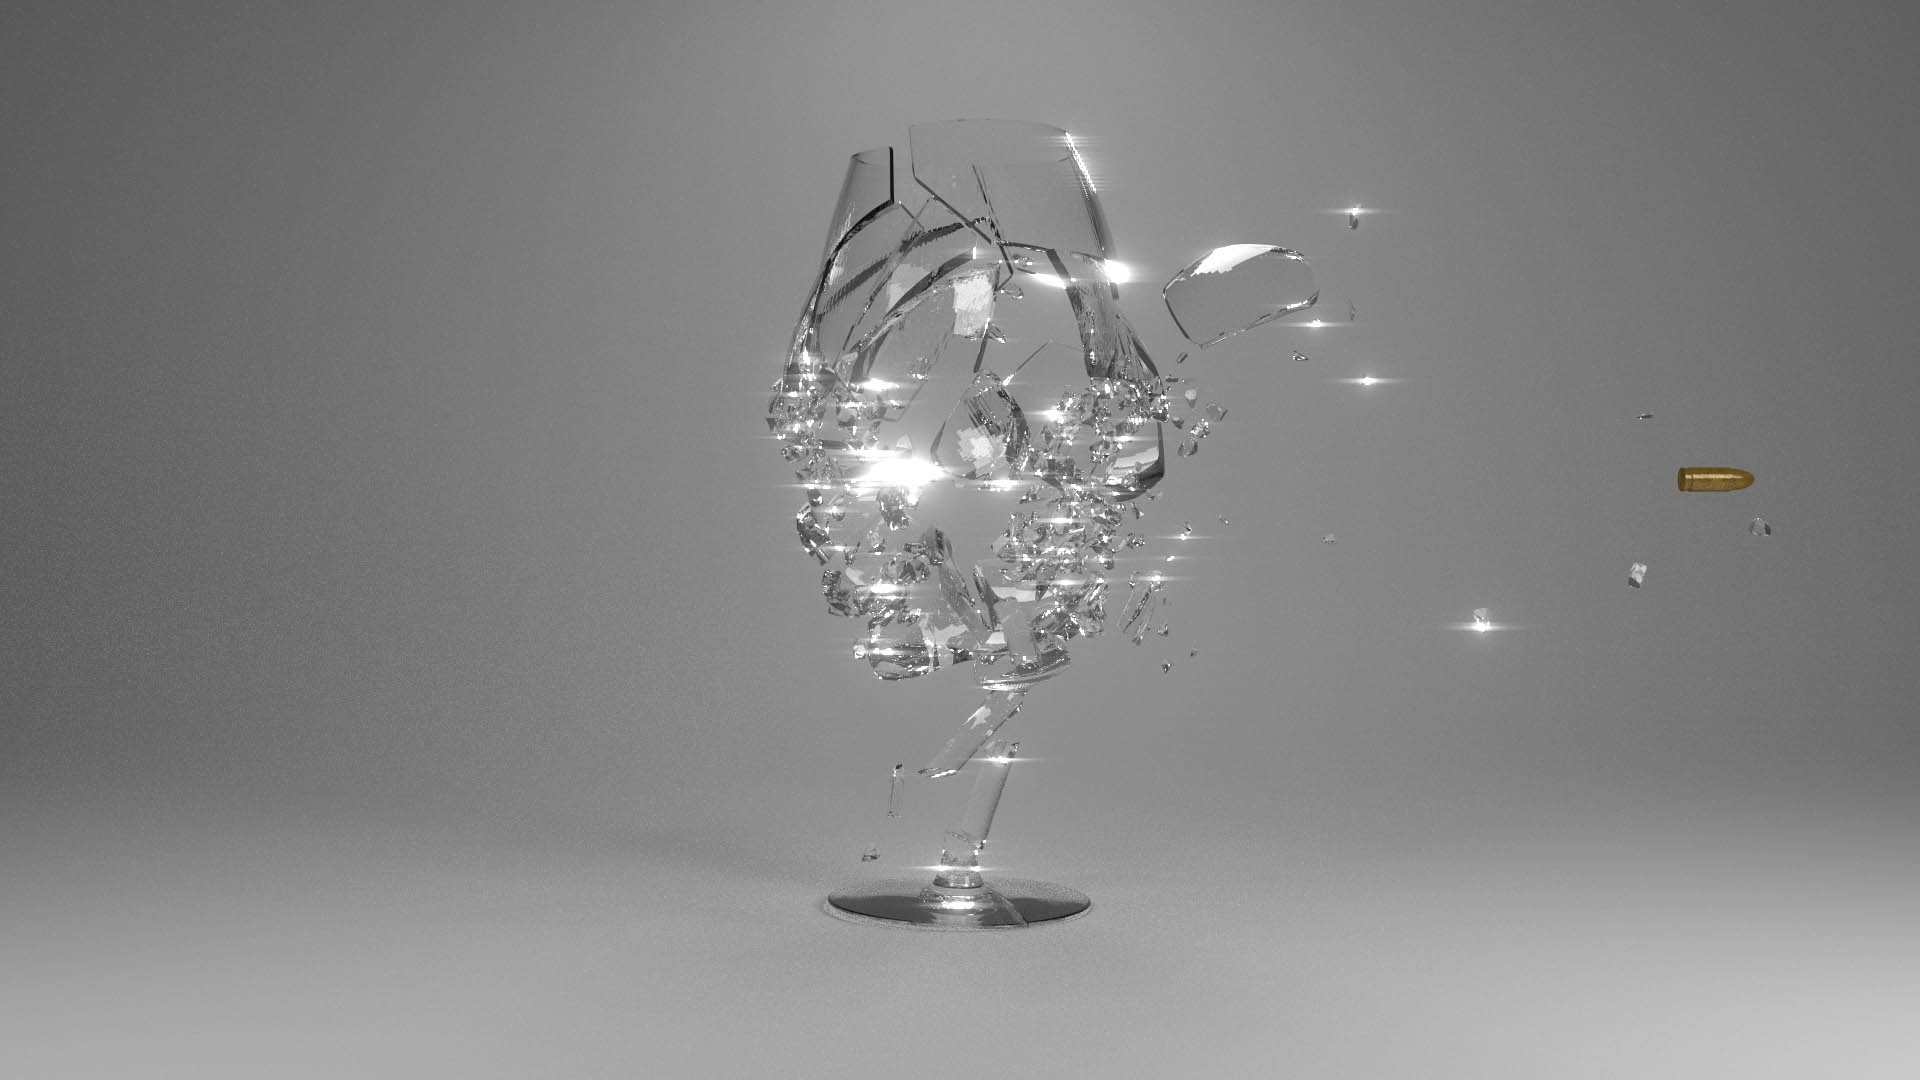 Broken-Glass-Latest-HD-Free-Download-1920%C3%971080-wallpaper-wp3803459